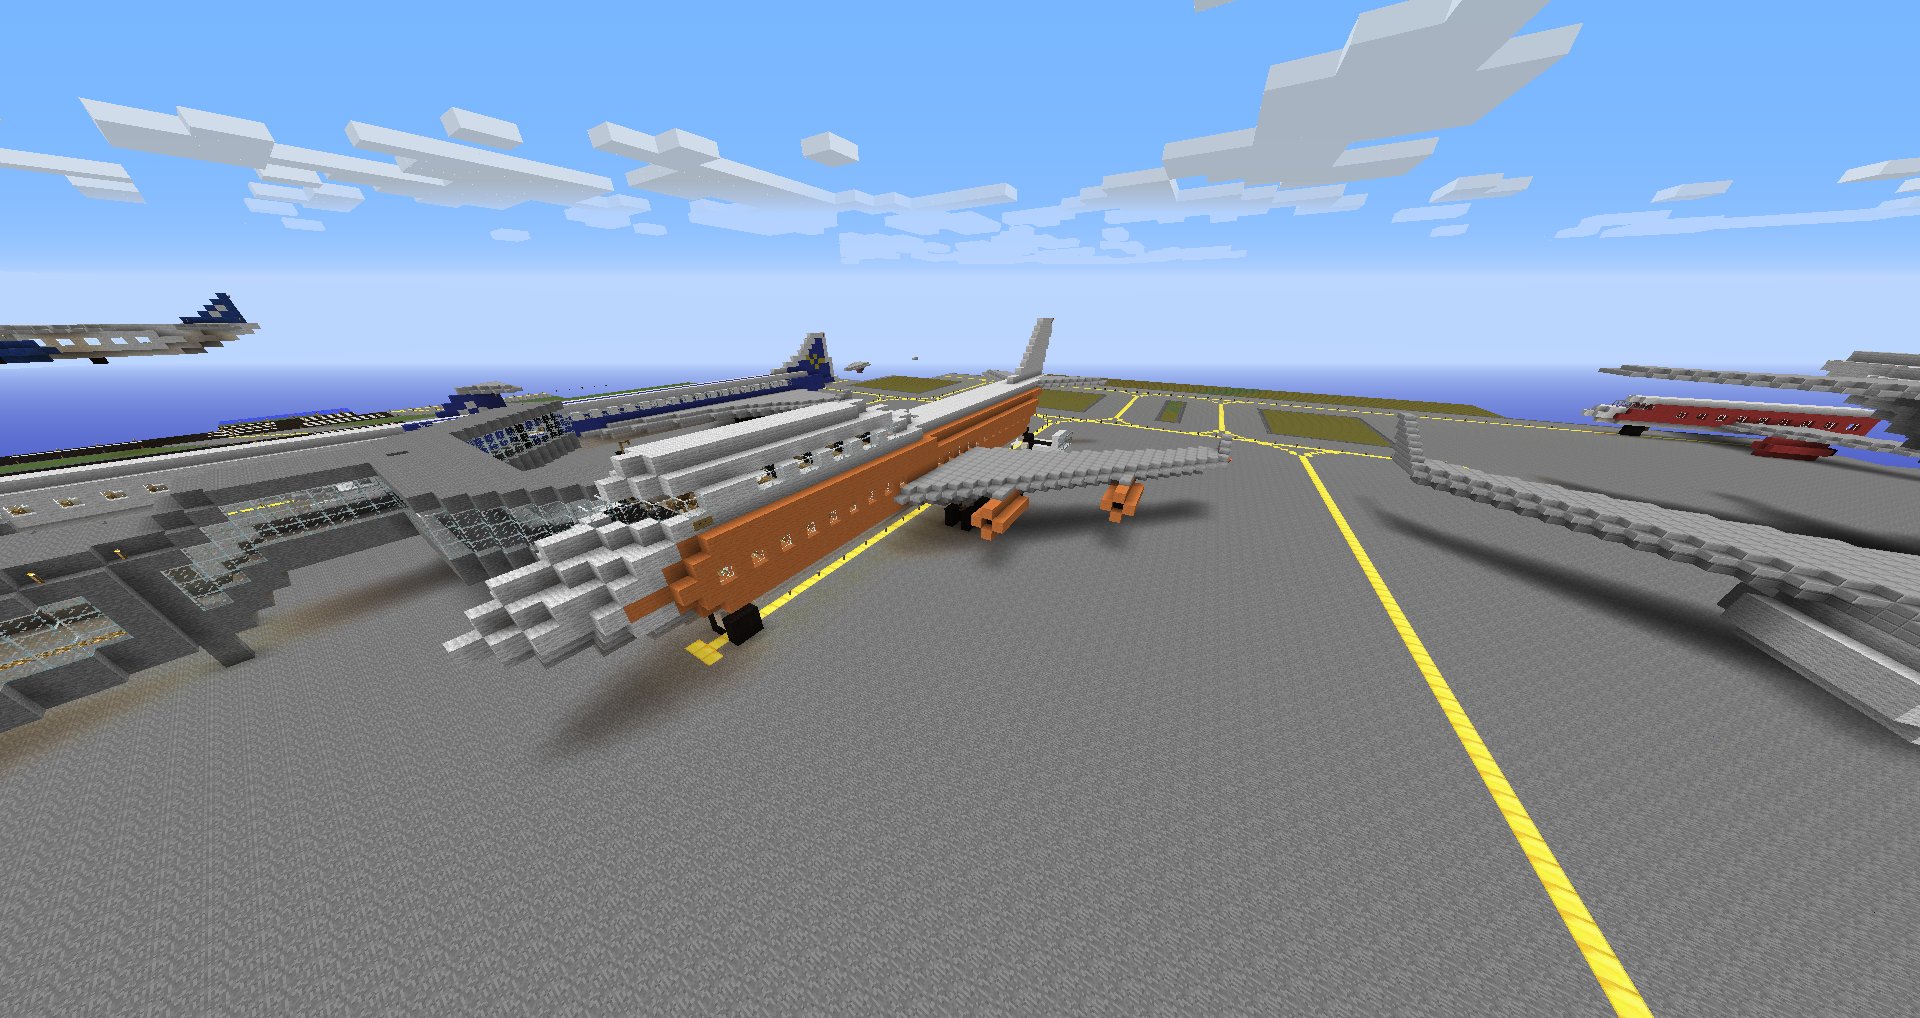 RAF Typhoon Fighter Aircraft besides Board Game Wargame Counters further Plane Landing Over Beach in addition Plane Us Air Force Aircraft further Minecraft Concorde Airplane. on list_of_planes